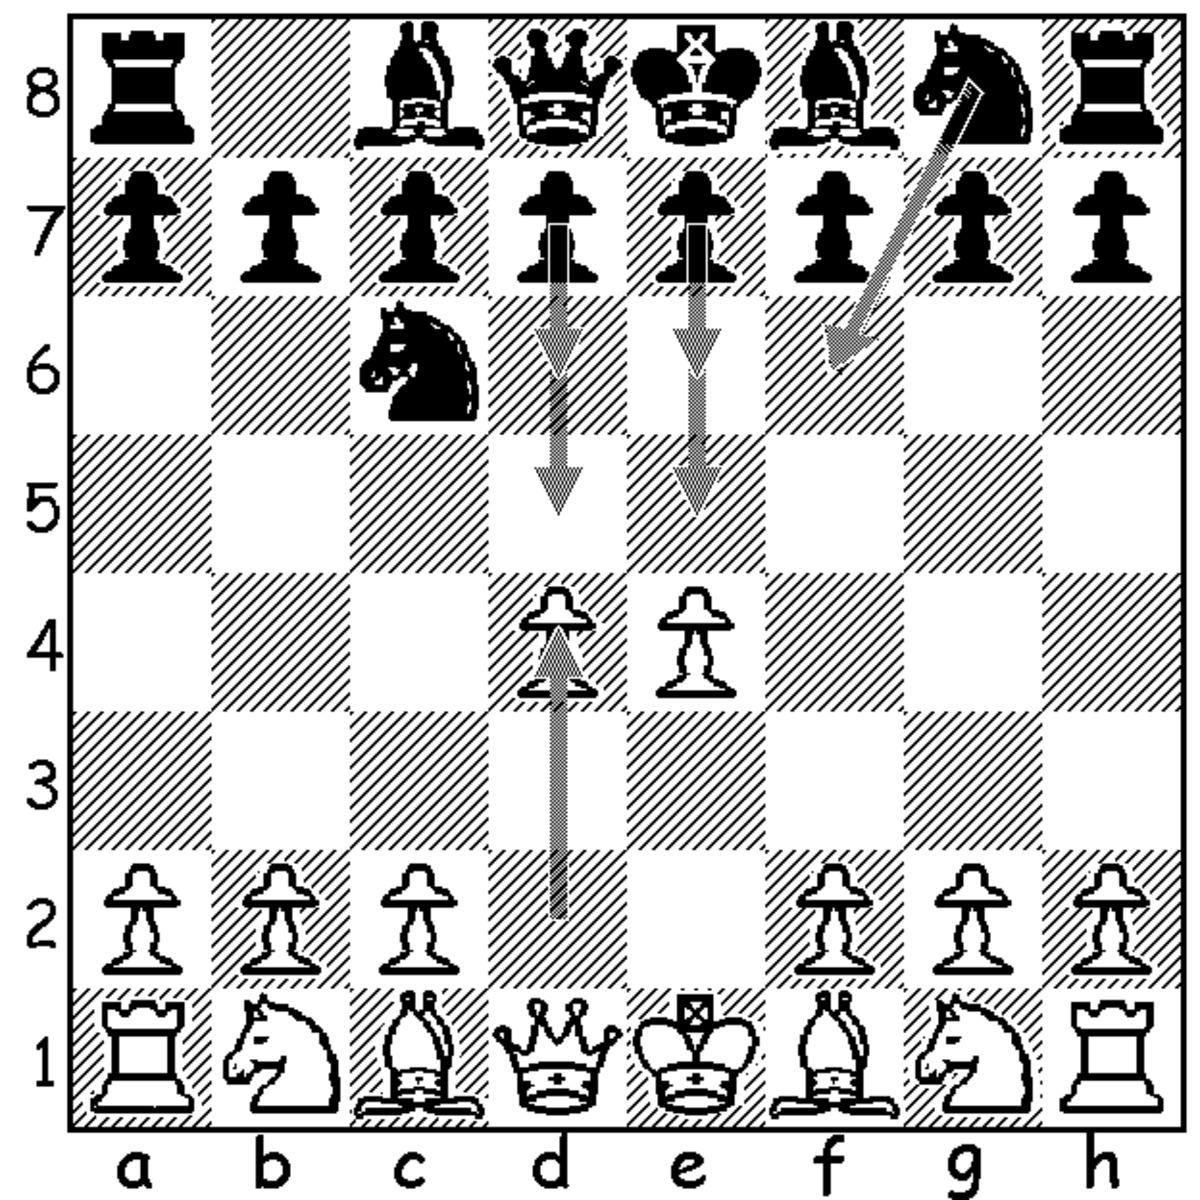 Chess Openings: A Simple and Solid Way for White to Play Against the Nimzovich Defense (1.e4 Nc6)